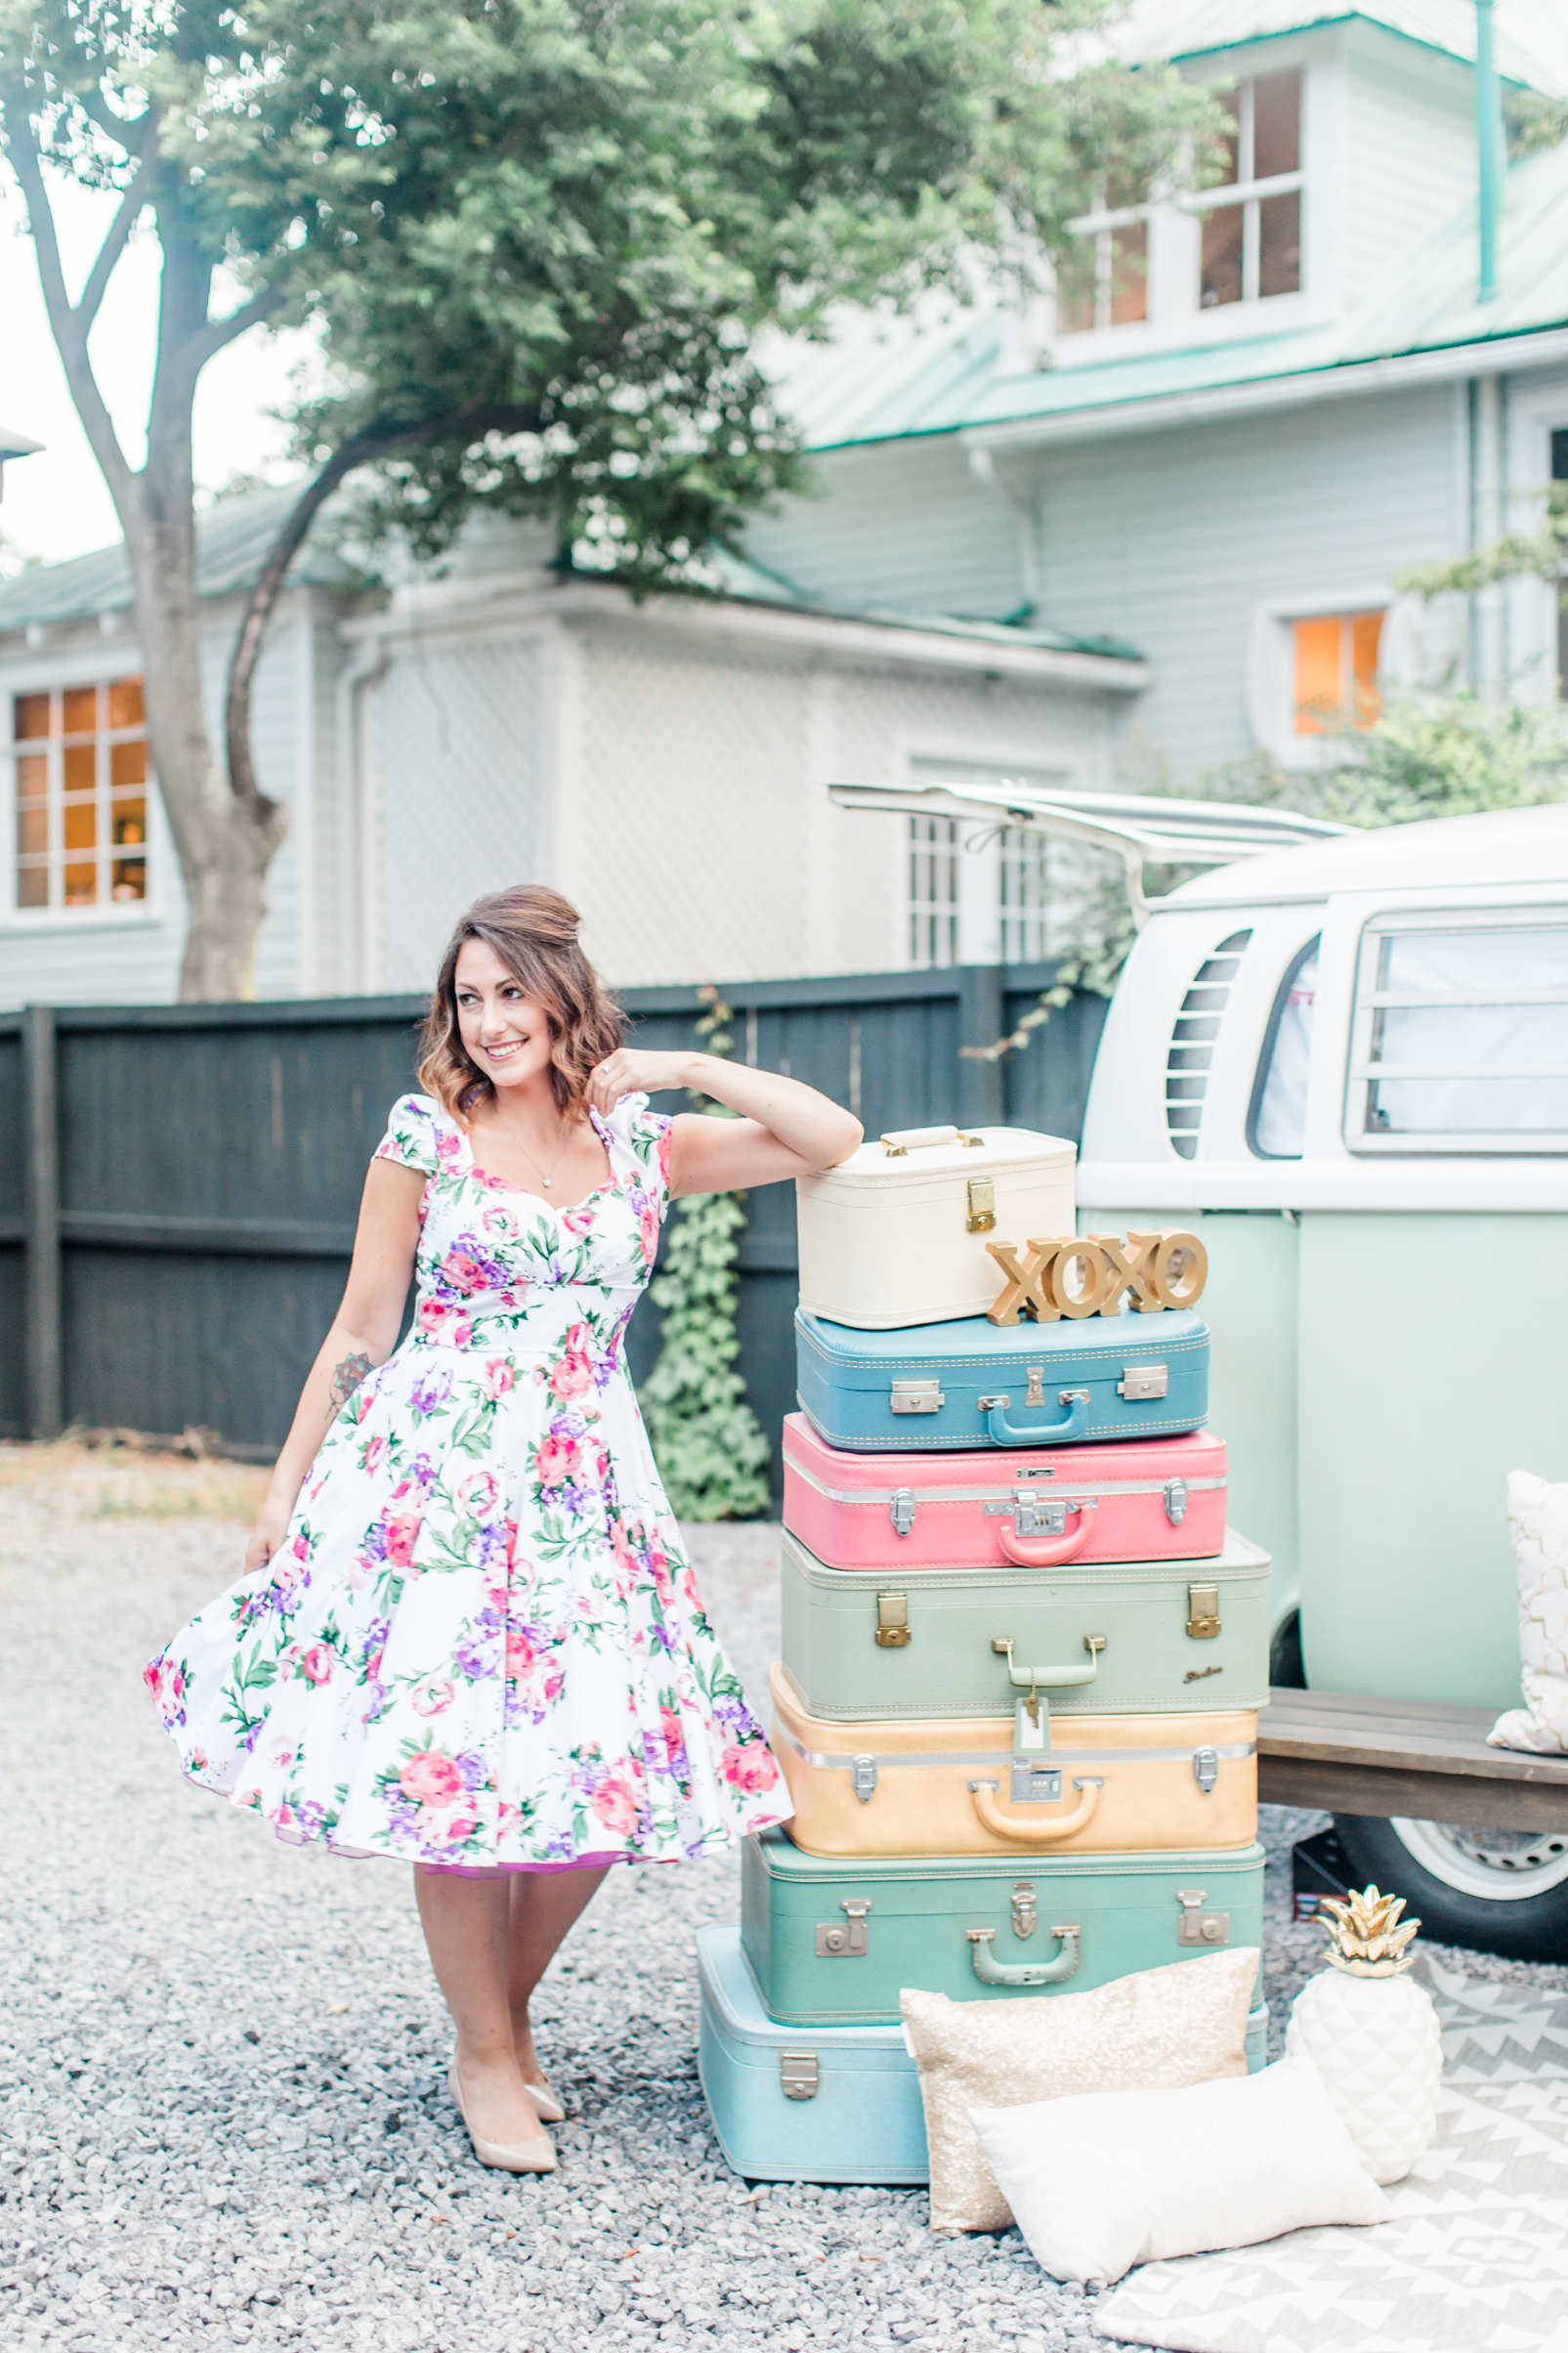 Model:  Kara Blakeman   Planner/Designer:   Raise the Ruth Events   VW Bus:   Lil Photo Bus Co   Rentals:   MadHatter Vintage   Hair & Makeup Artist:   Natty Contrera Artistry